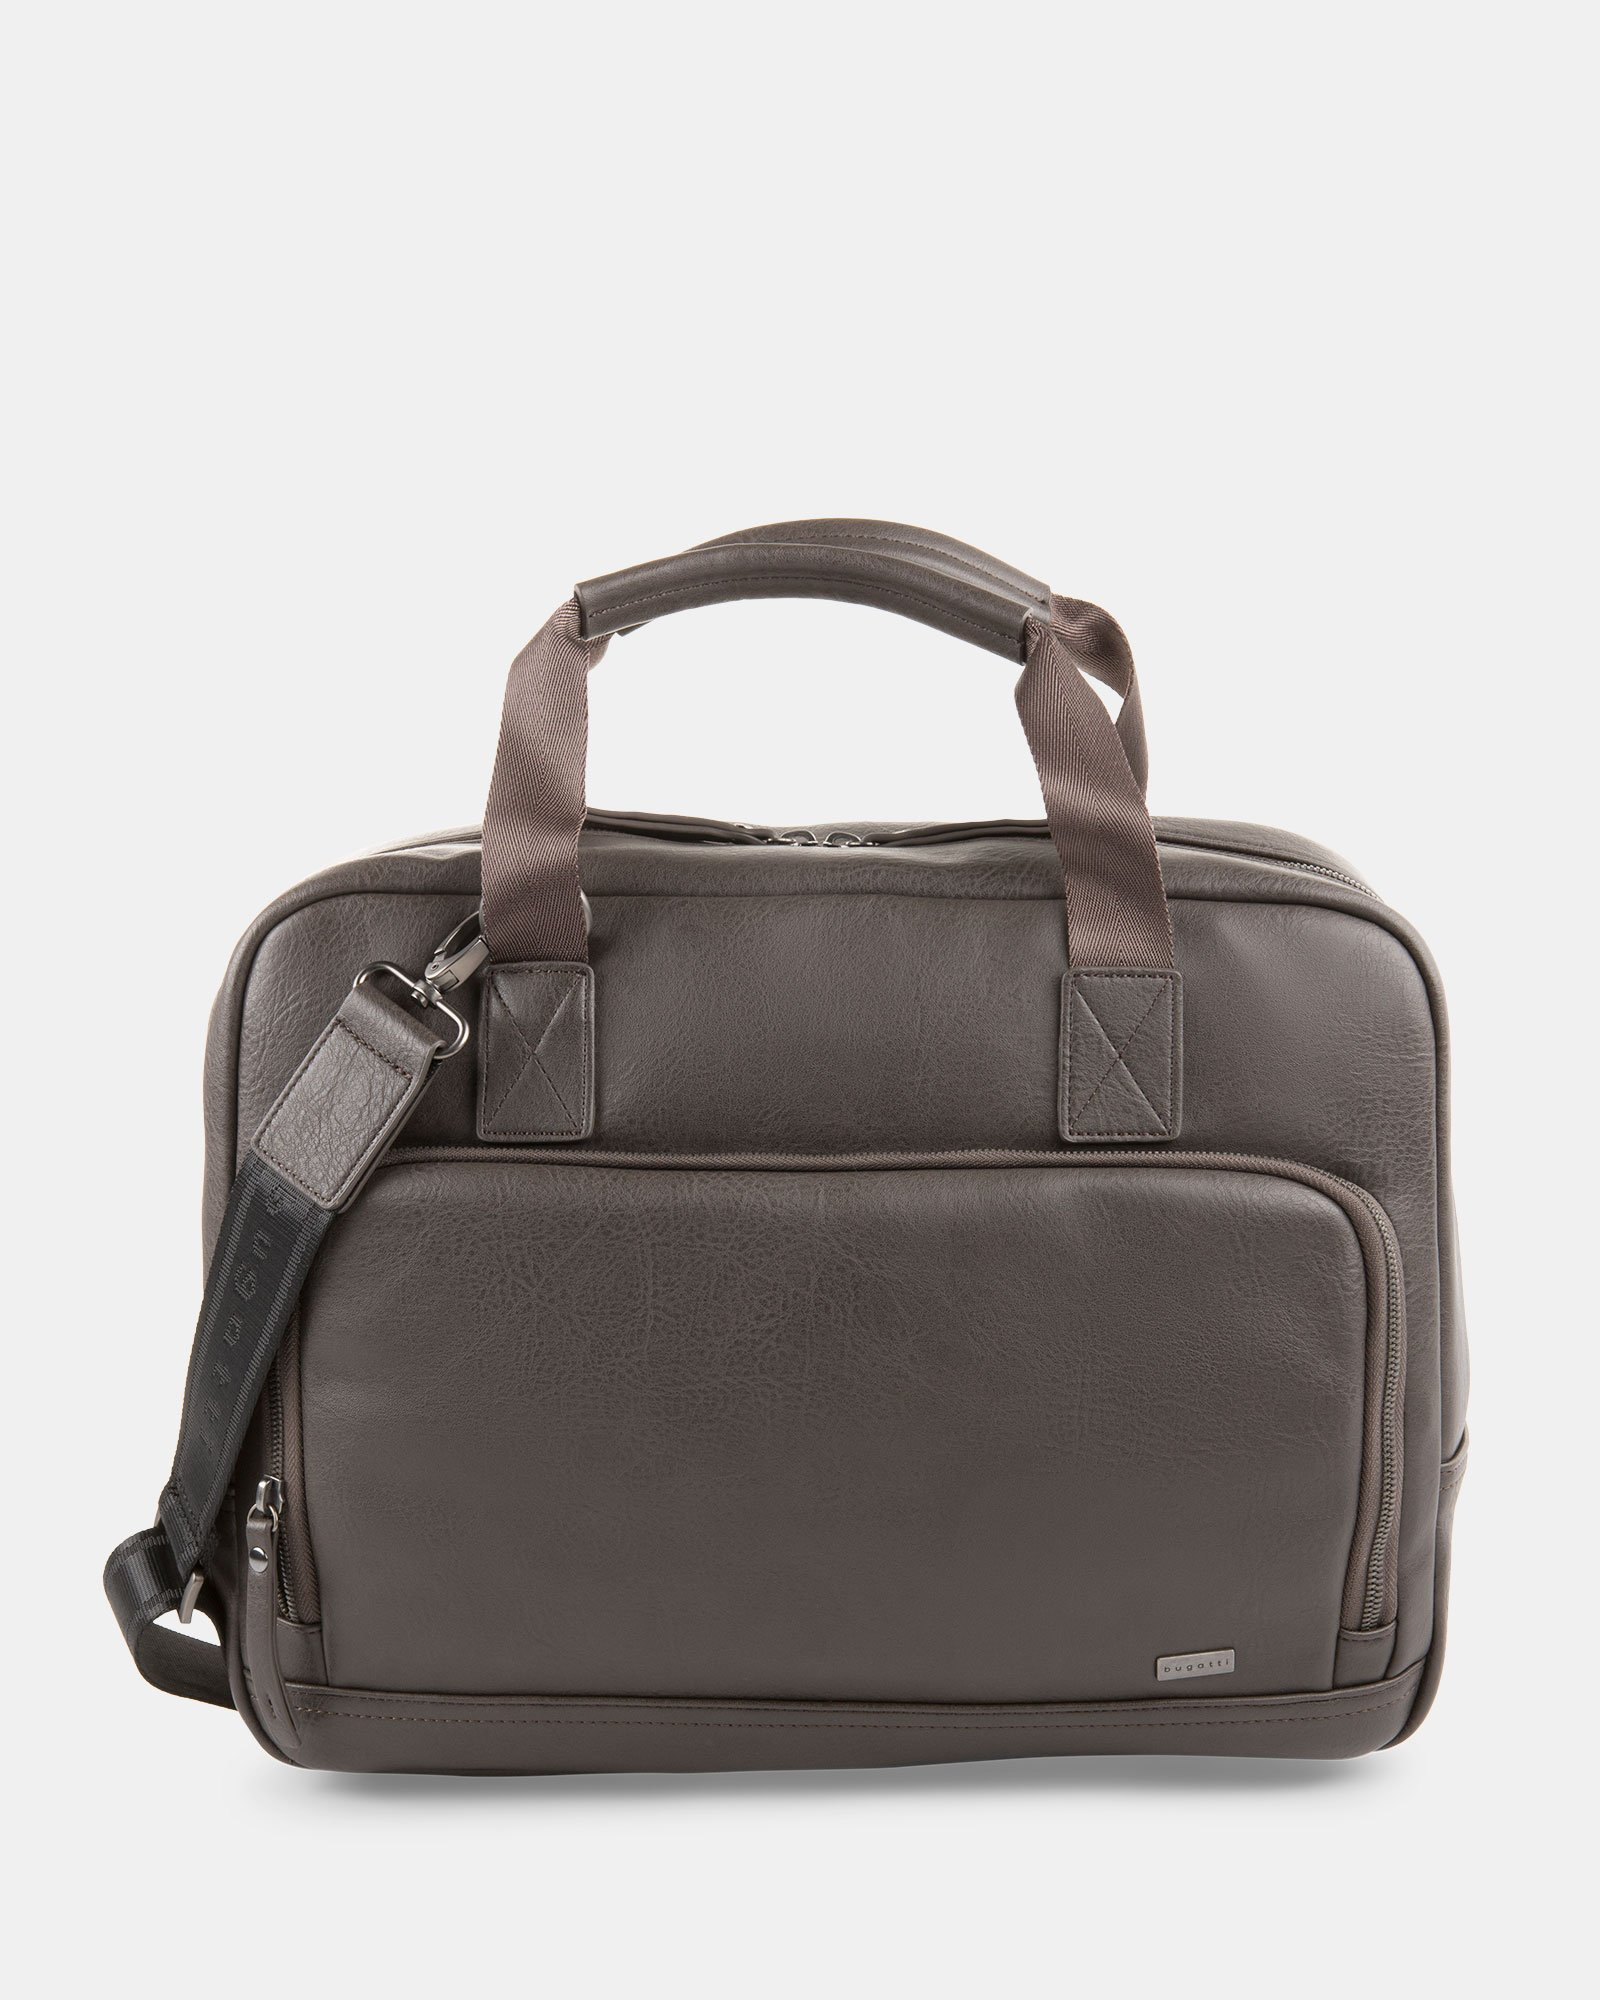 Executive Briefcase FOR 15.6 COMPUTER AND RFID PROTECTION - Stone  - Bugatti - Zoom